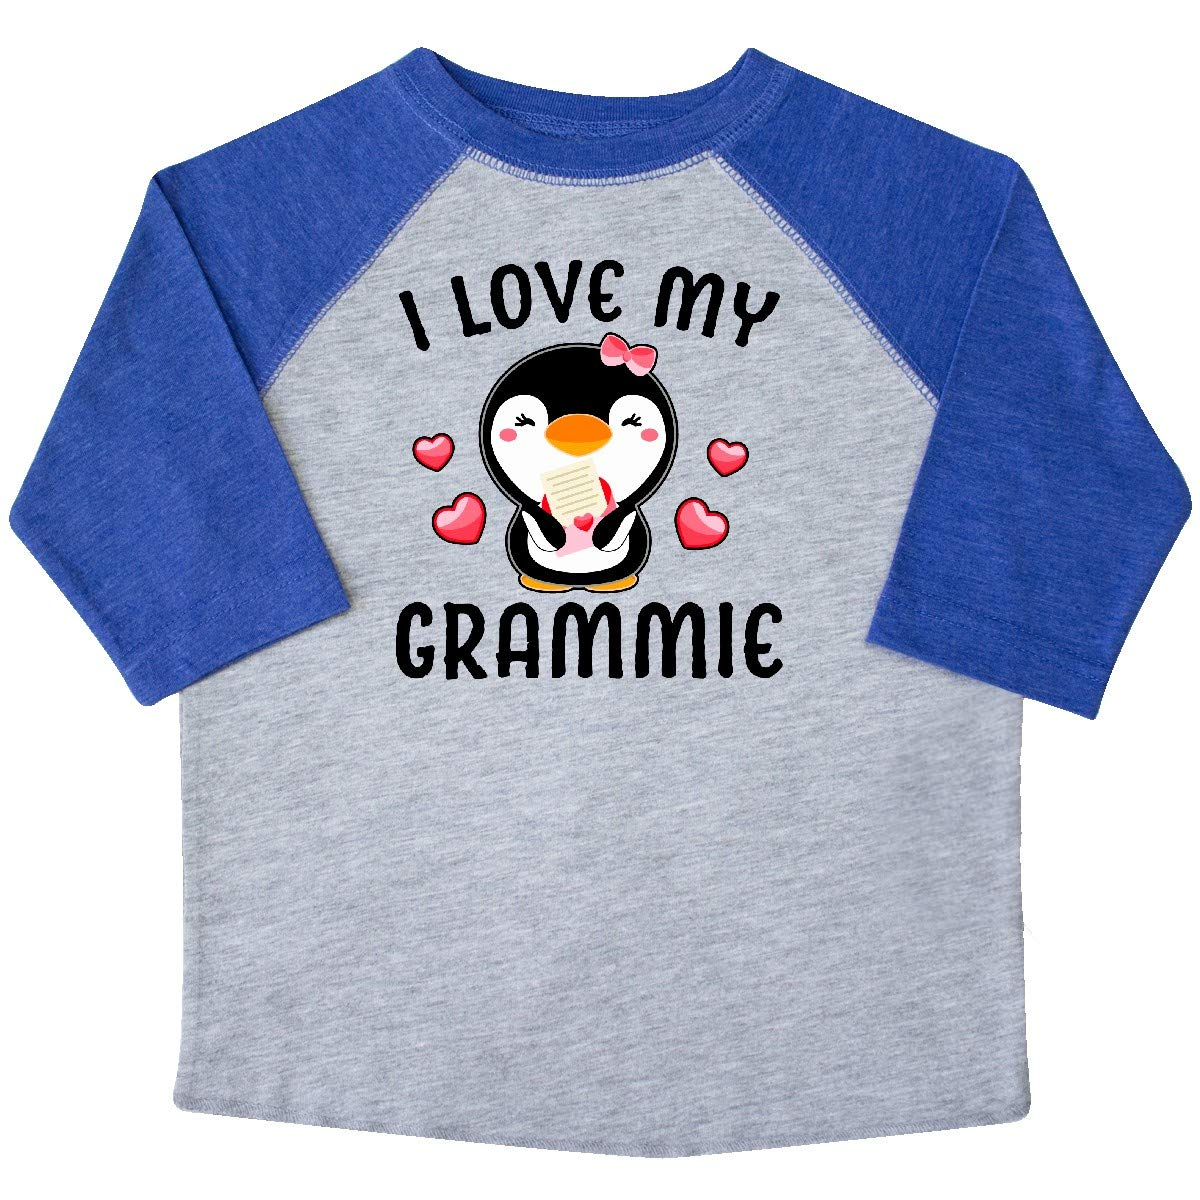 inktastic I Love My Grammie with Cute Penguin and Hearts Toddler T-Shirt